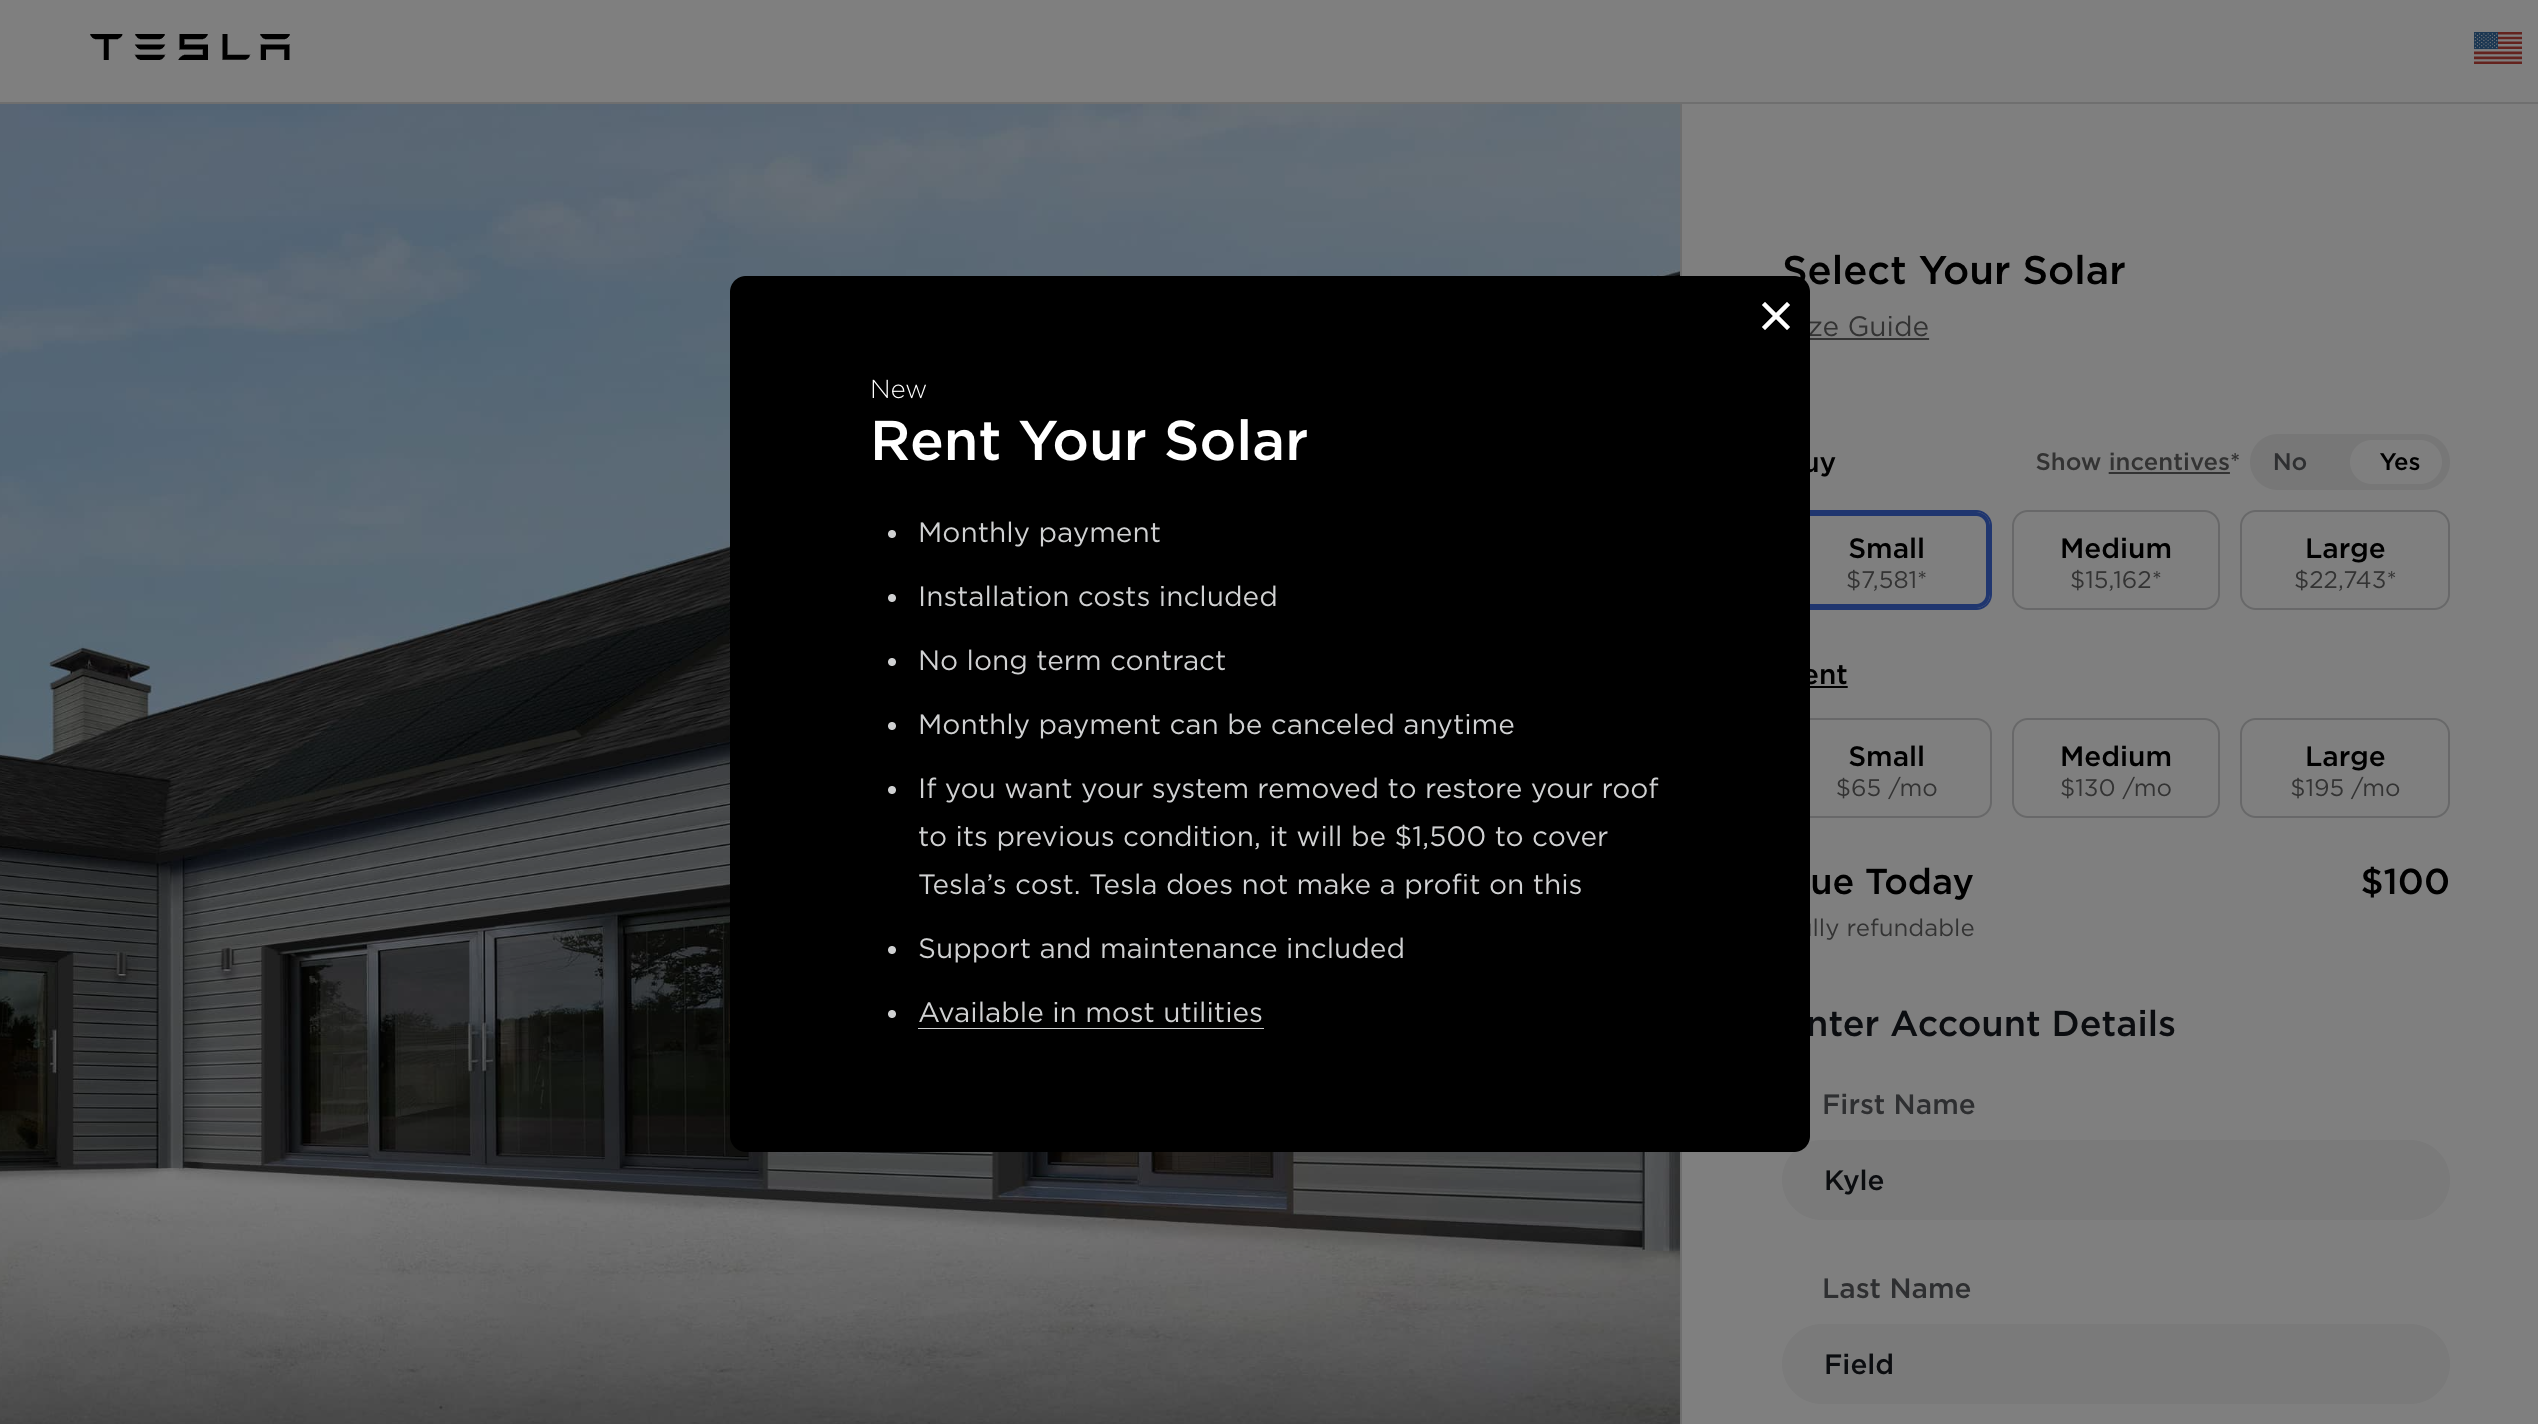 Tesla Makes Solar Affordable Again With New Monthly Rental